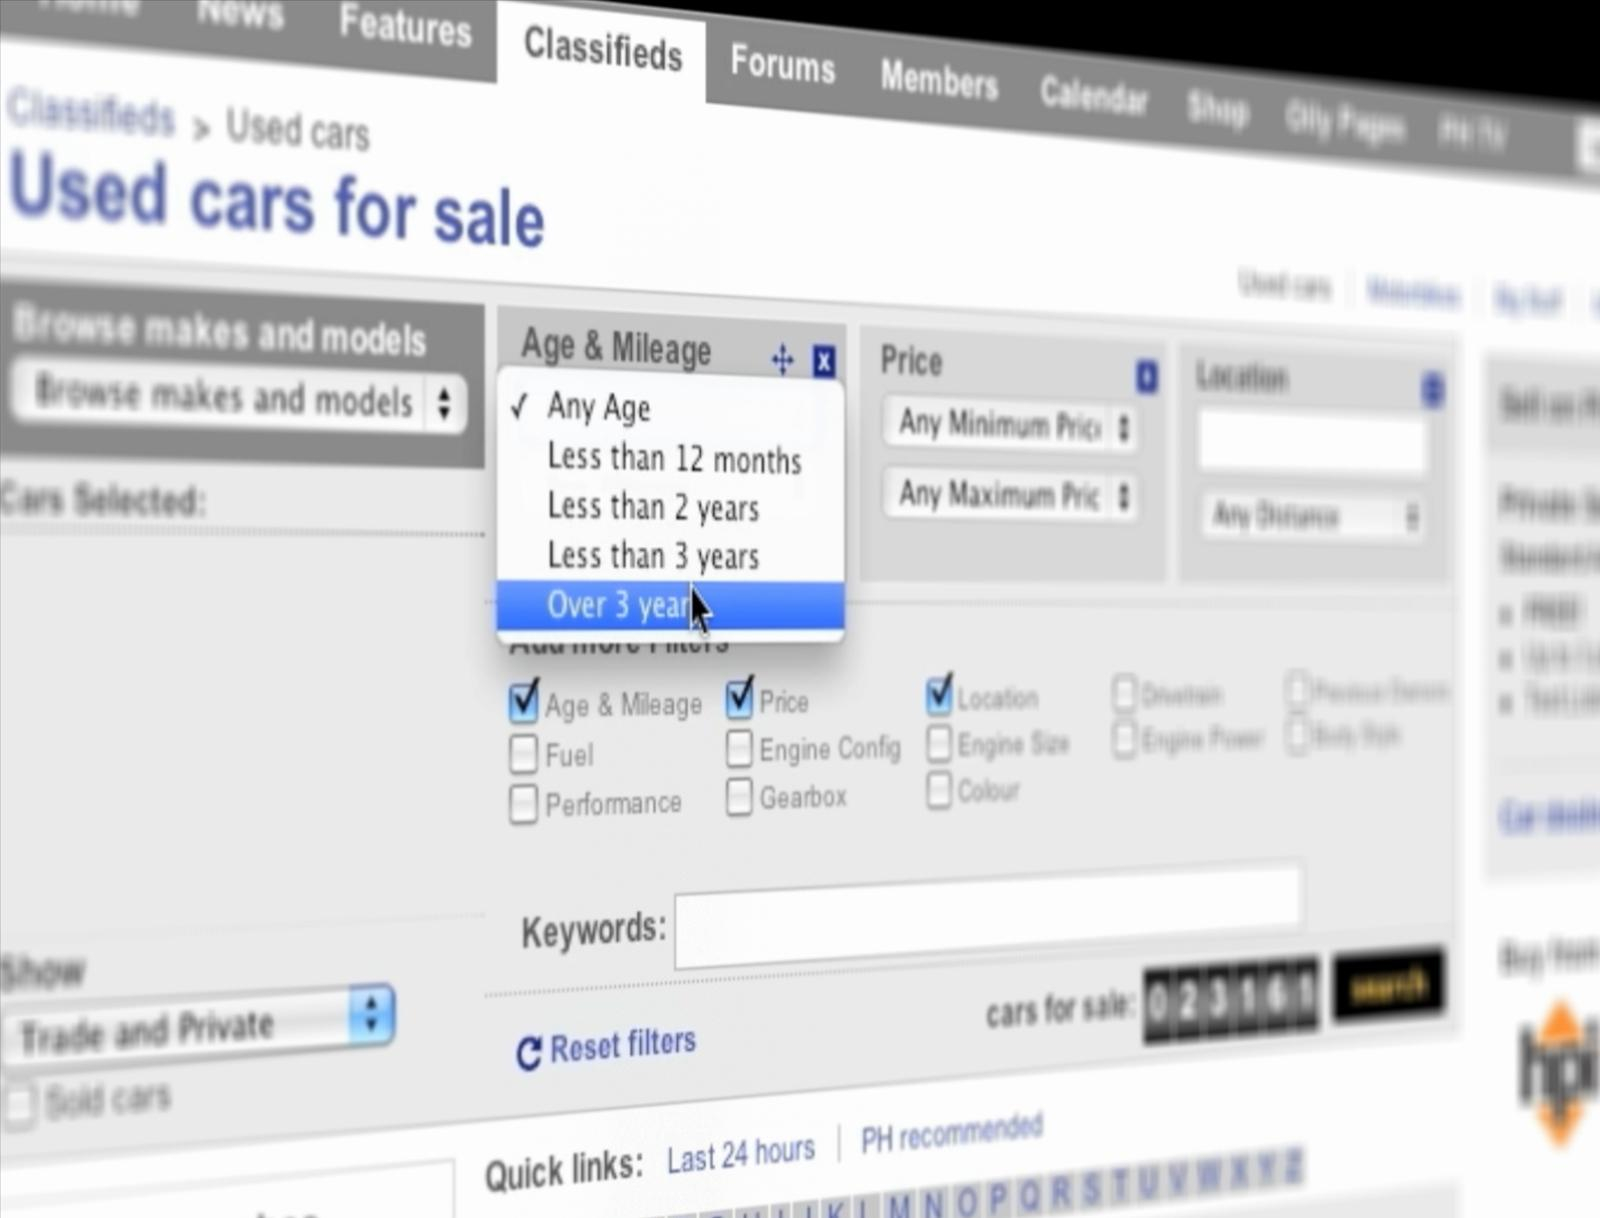 Essential research when buying a used car